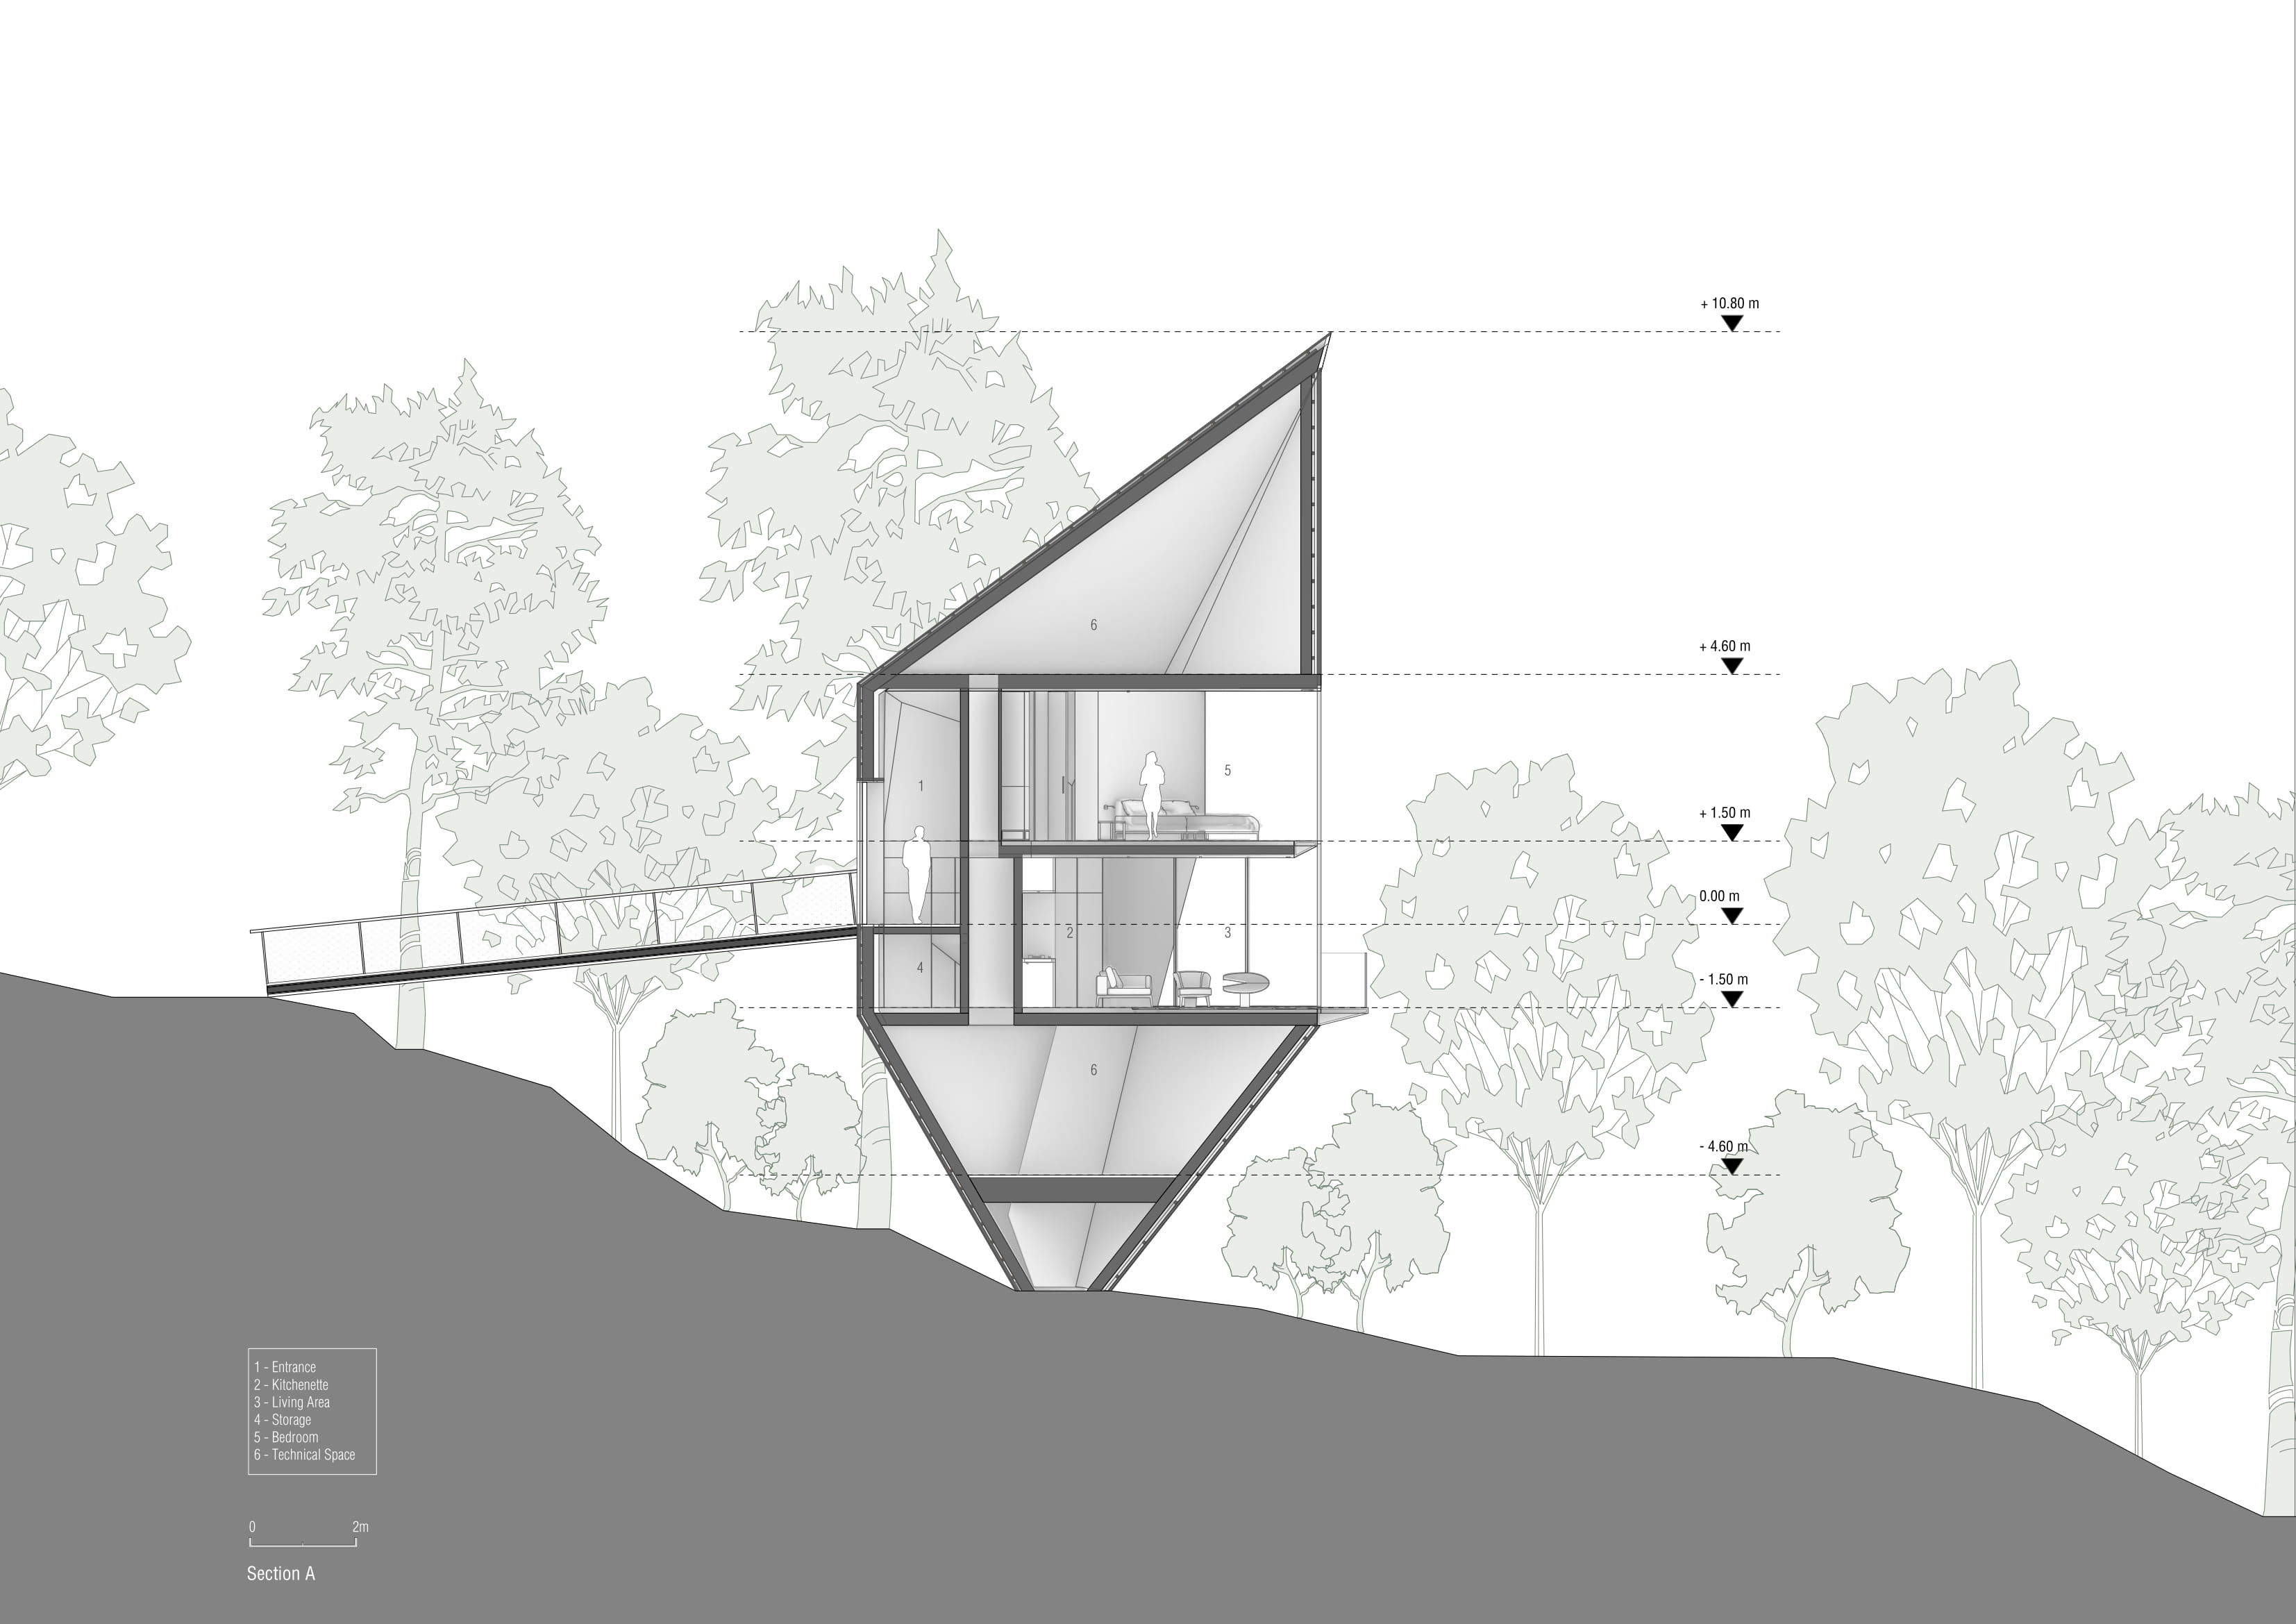 Section A Peter Pichler Architecture